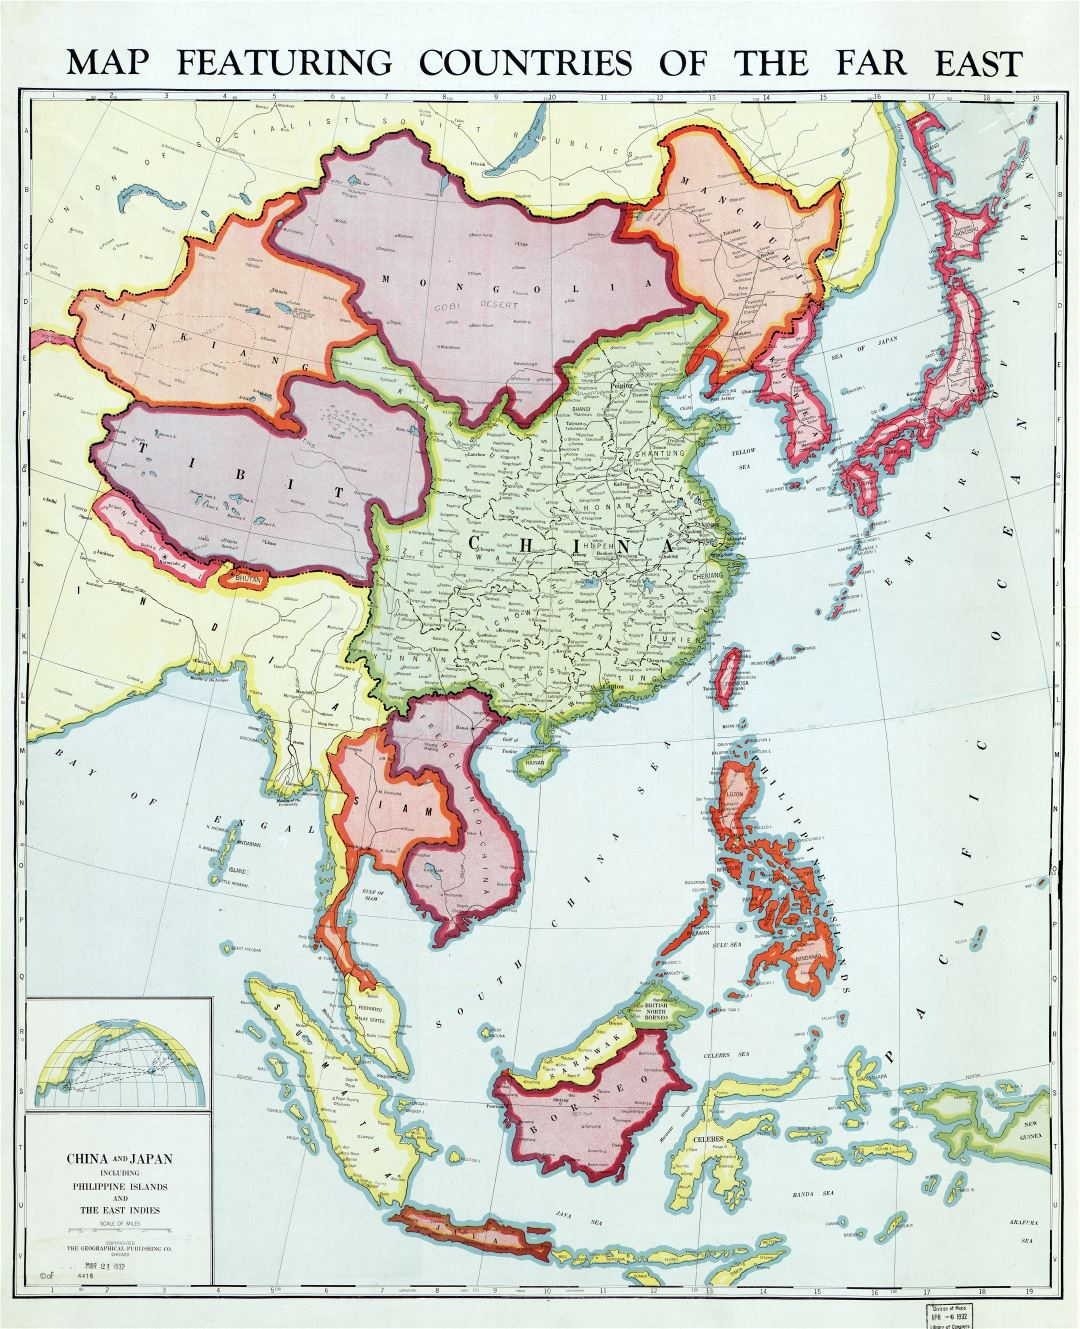 Large scale old political map of featuring countries of the Far East with the marks of cities and other marks - 1932 - (1)